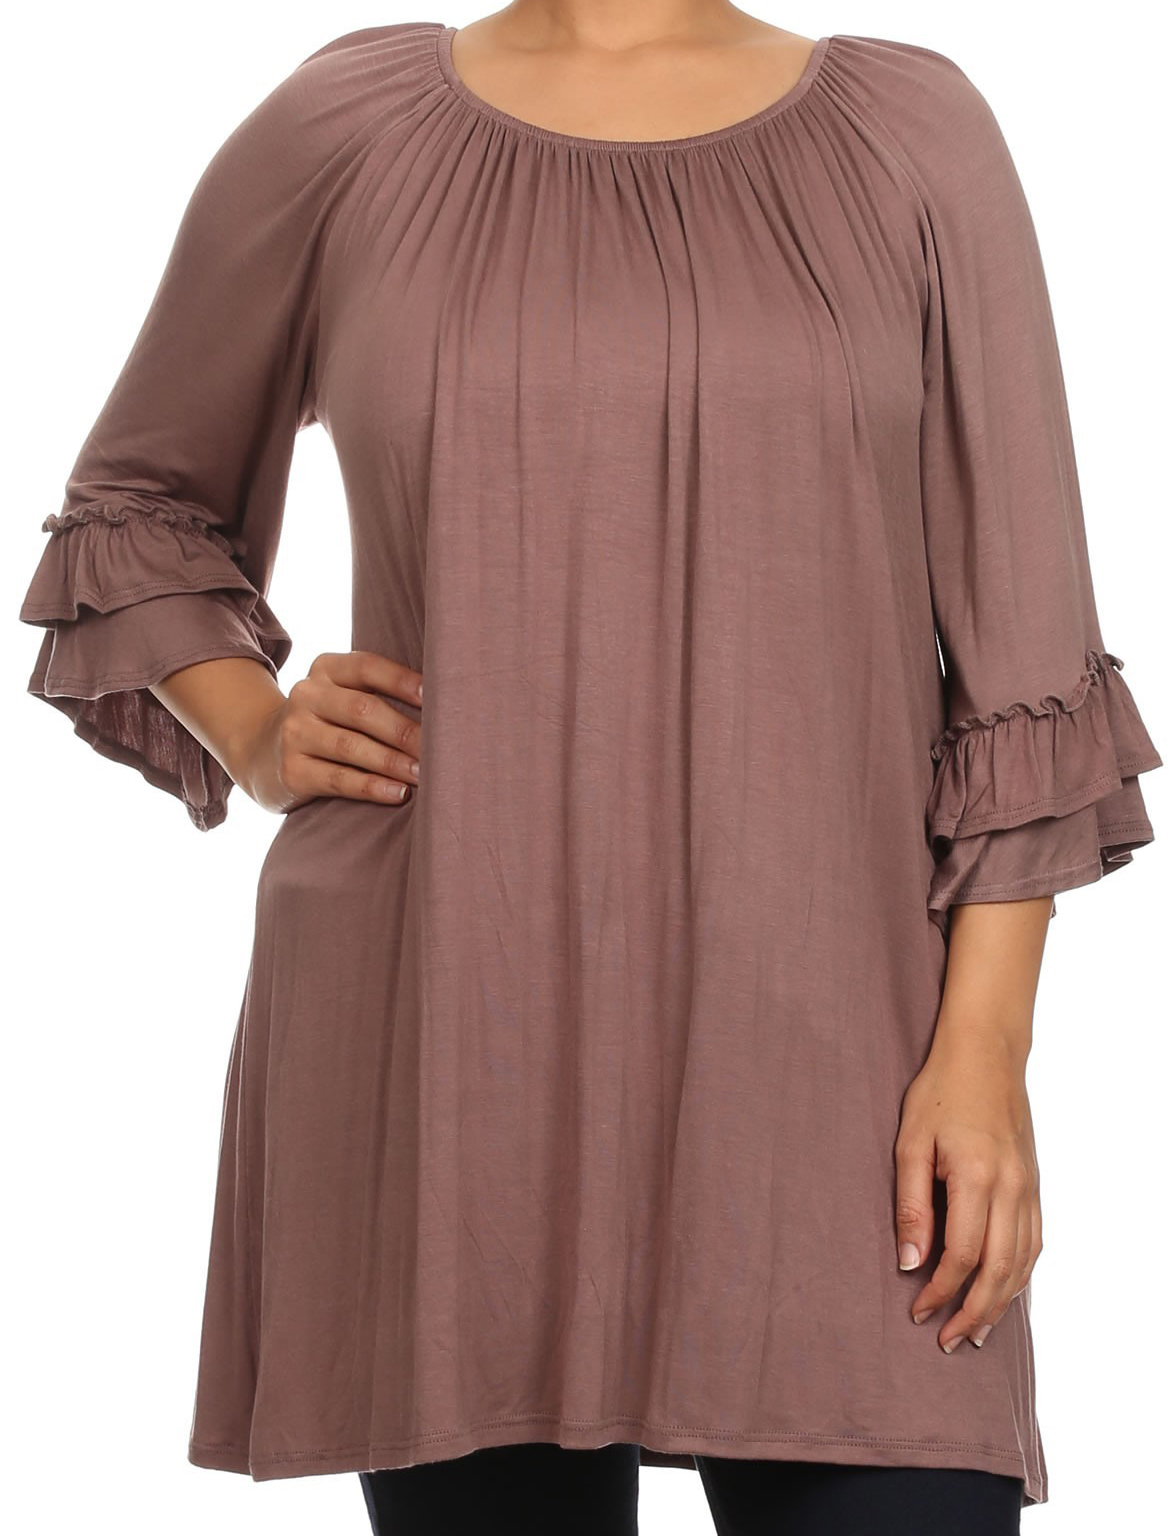 Women Plus Size Half Sleeve Solid Off Shoulder Casual Tunic Top Dress Mocha XL (B608 SD) BNY Corner